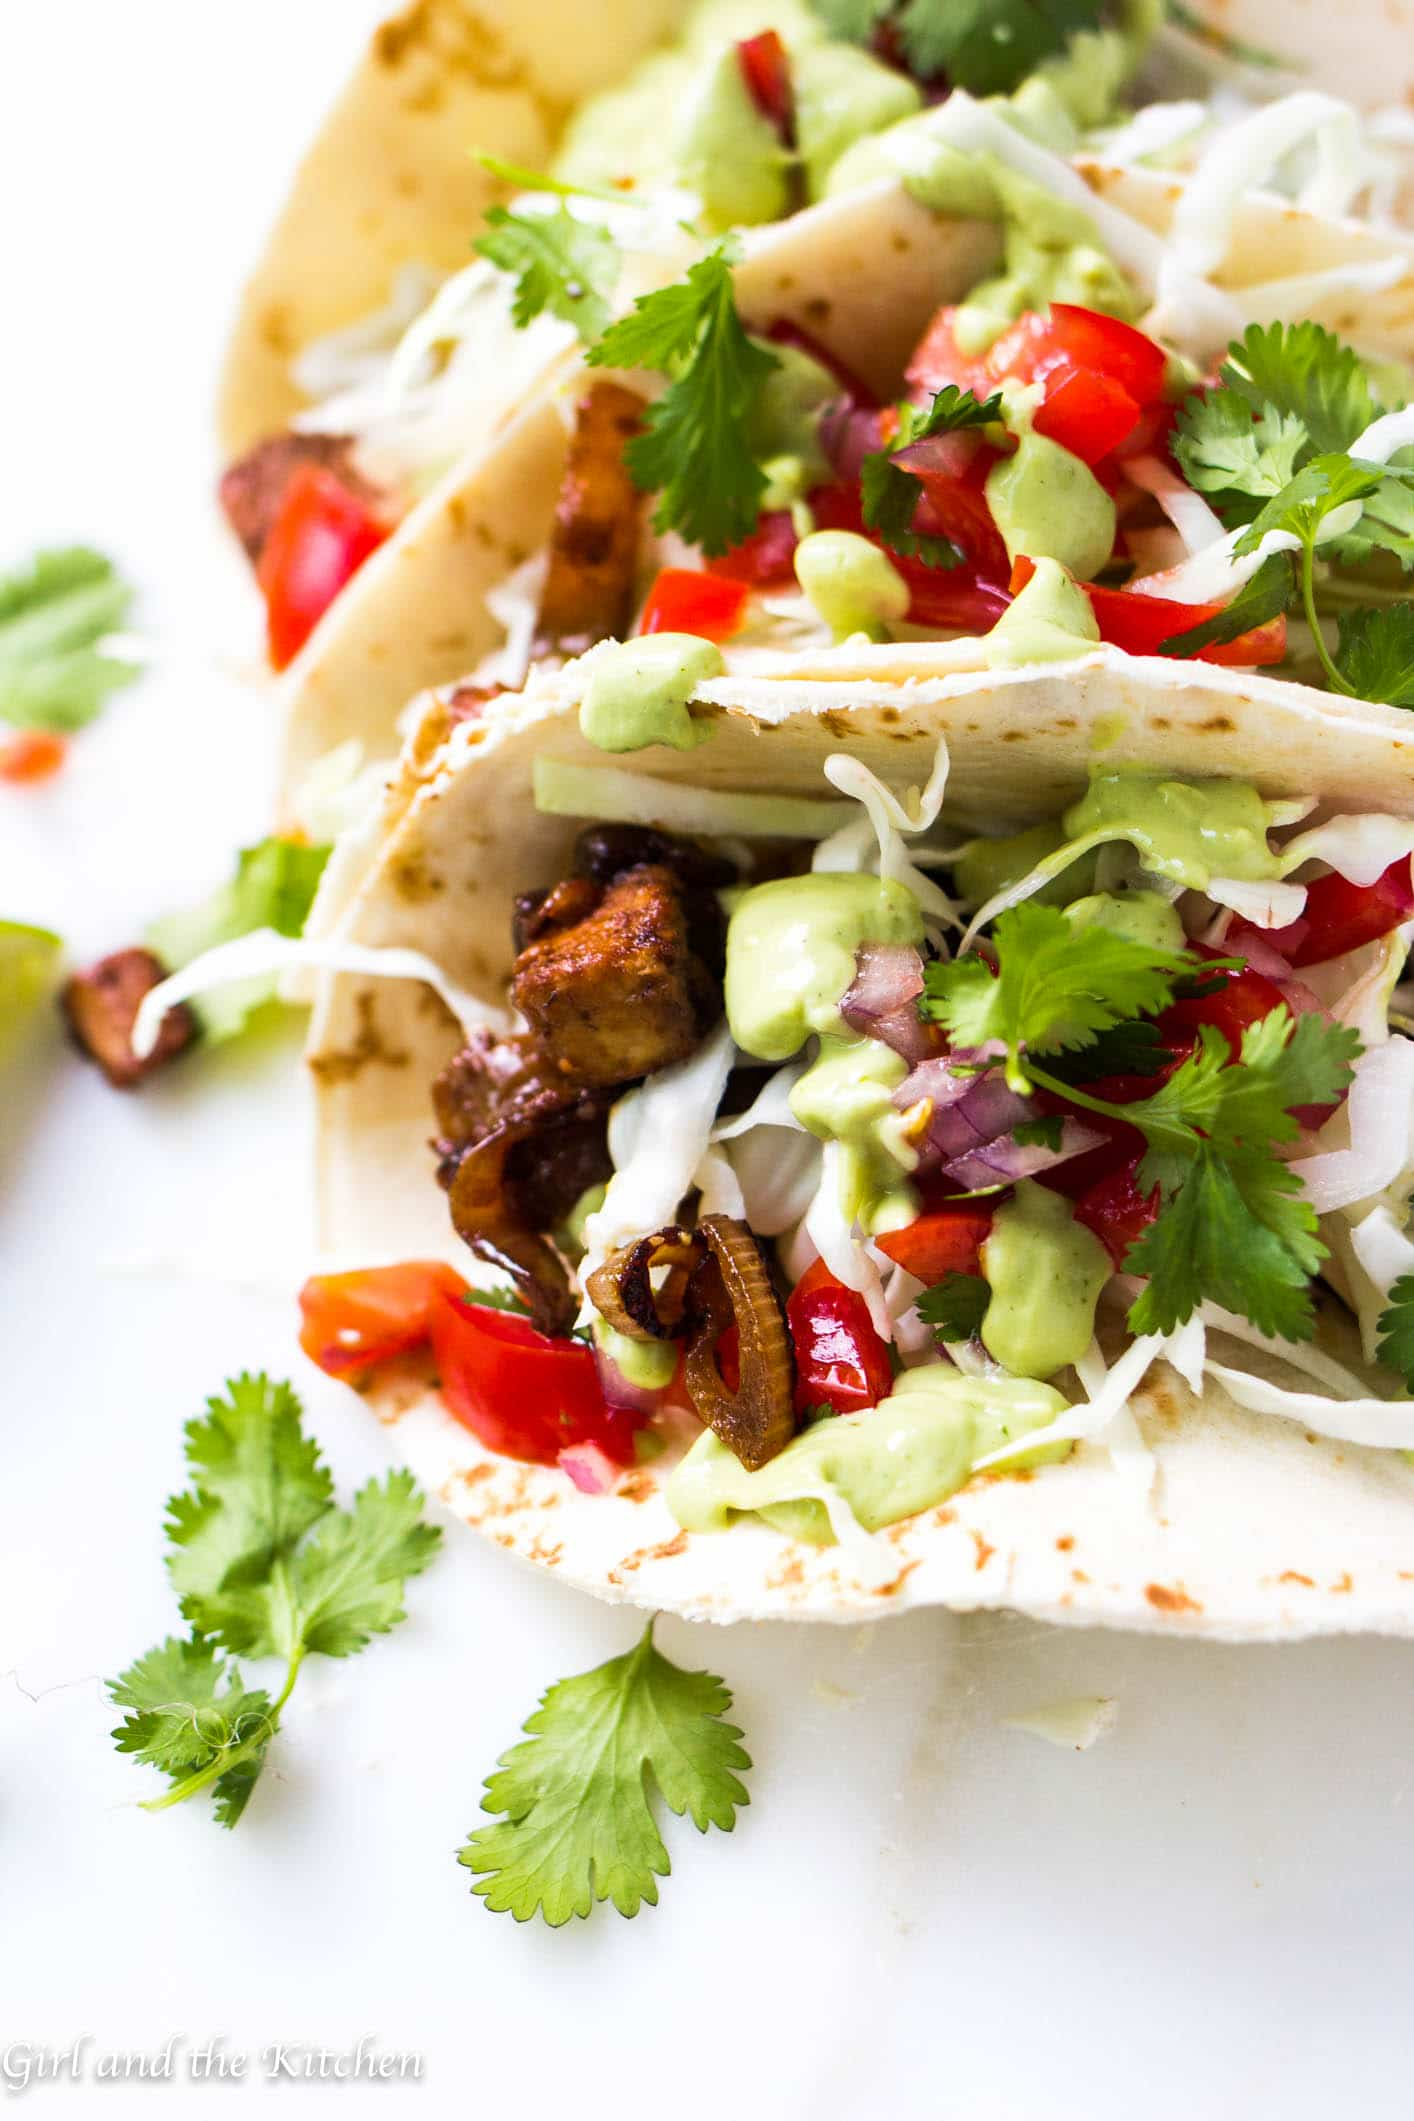 These extremely flavorful and tender tacos made with Quorn Chikn Tenders are perfect for a meatless meal! Loaded with savory and spicy veggies, crispy cabbage and an avocado and cilantro cream this will make any week night seem like a night out in a Mexican taco stand...minus the grease!